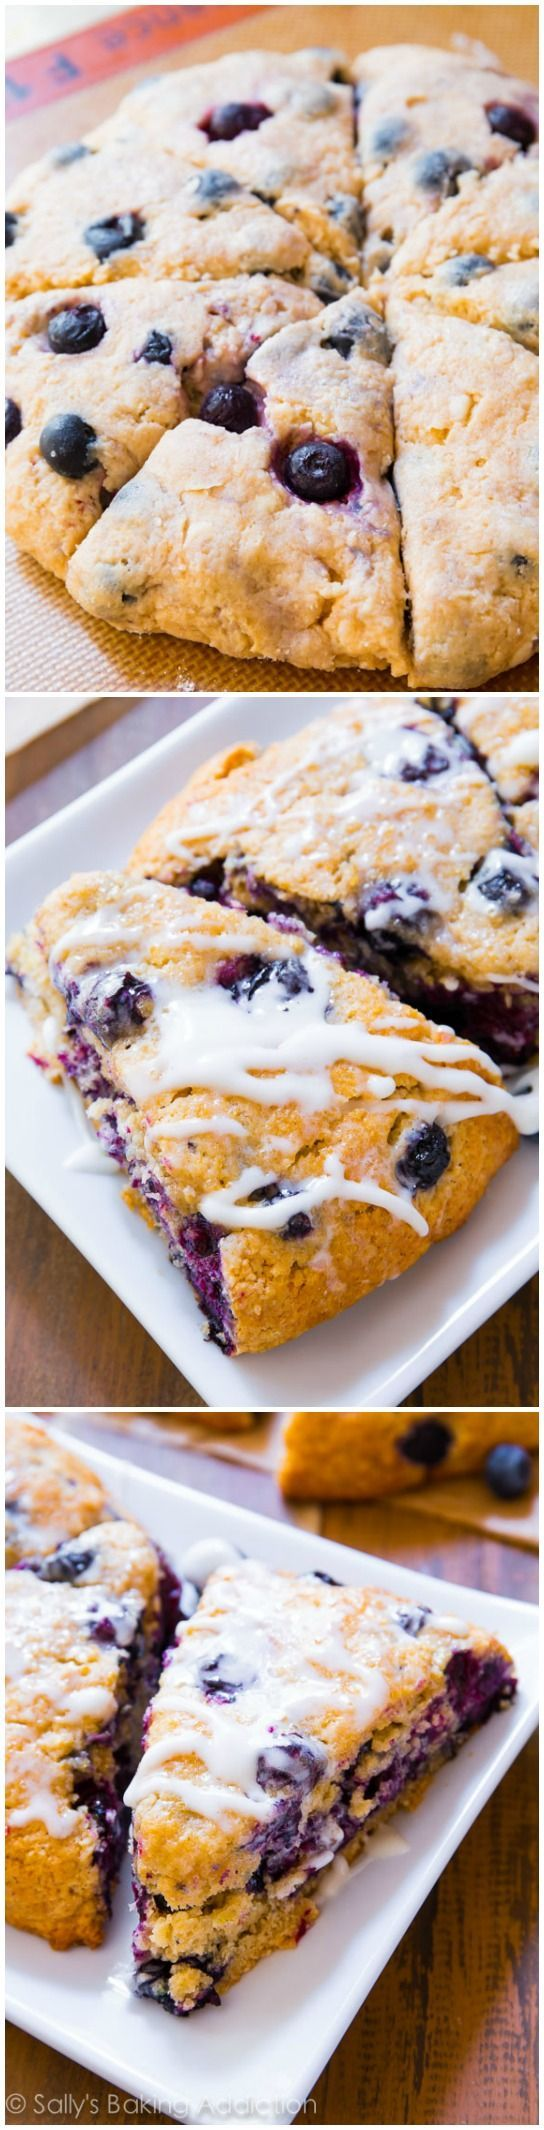 Super moist and tender in every bite. These are my FAVORITE blueberry scones!